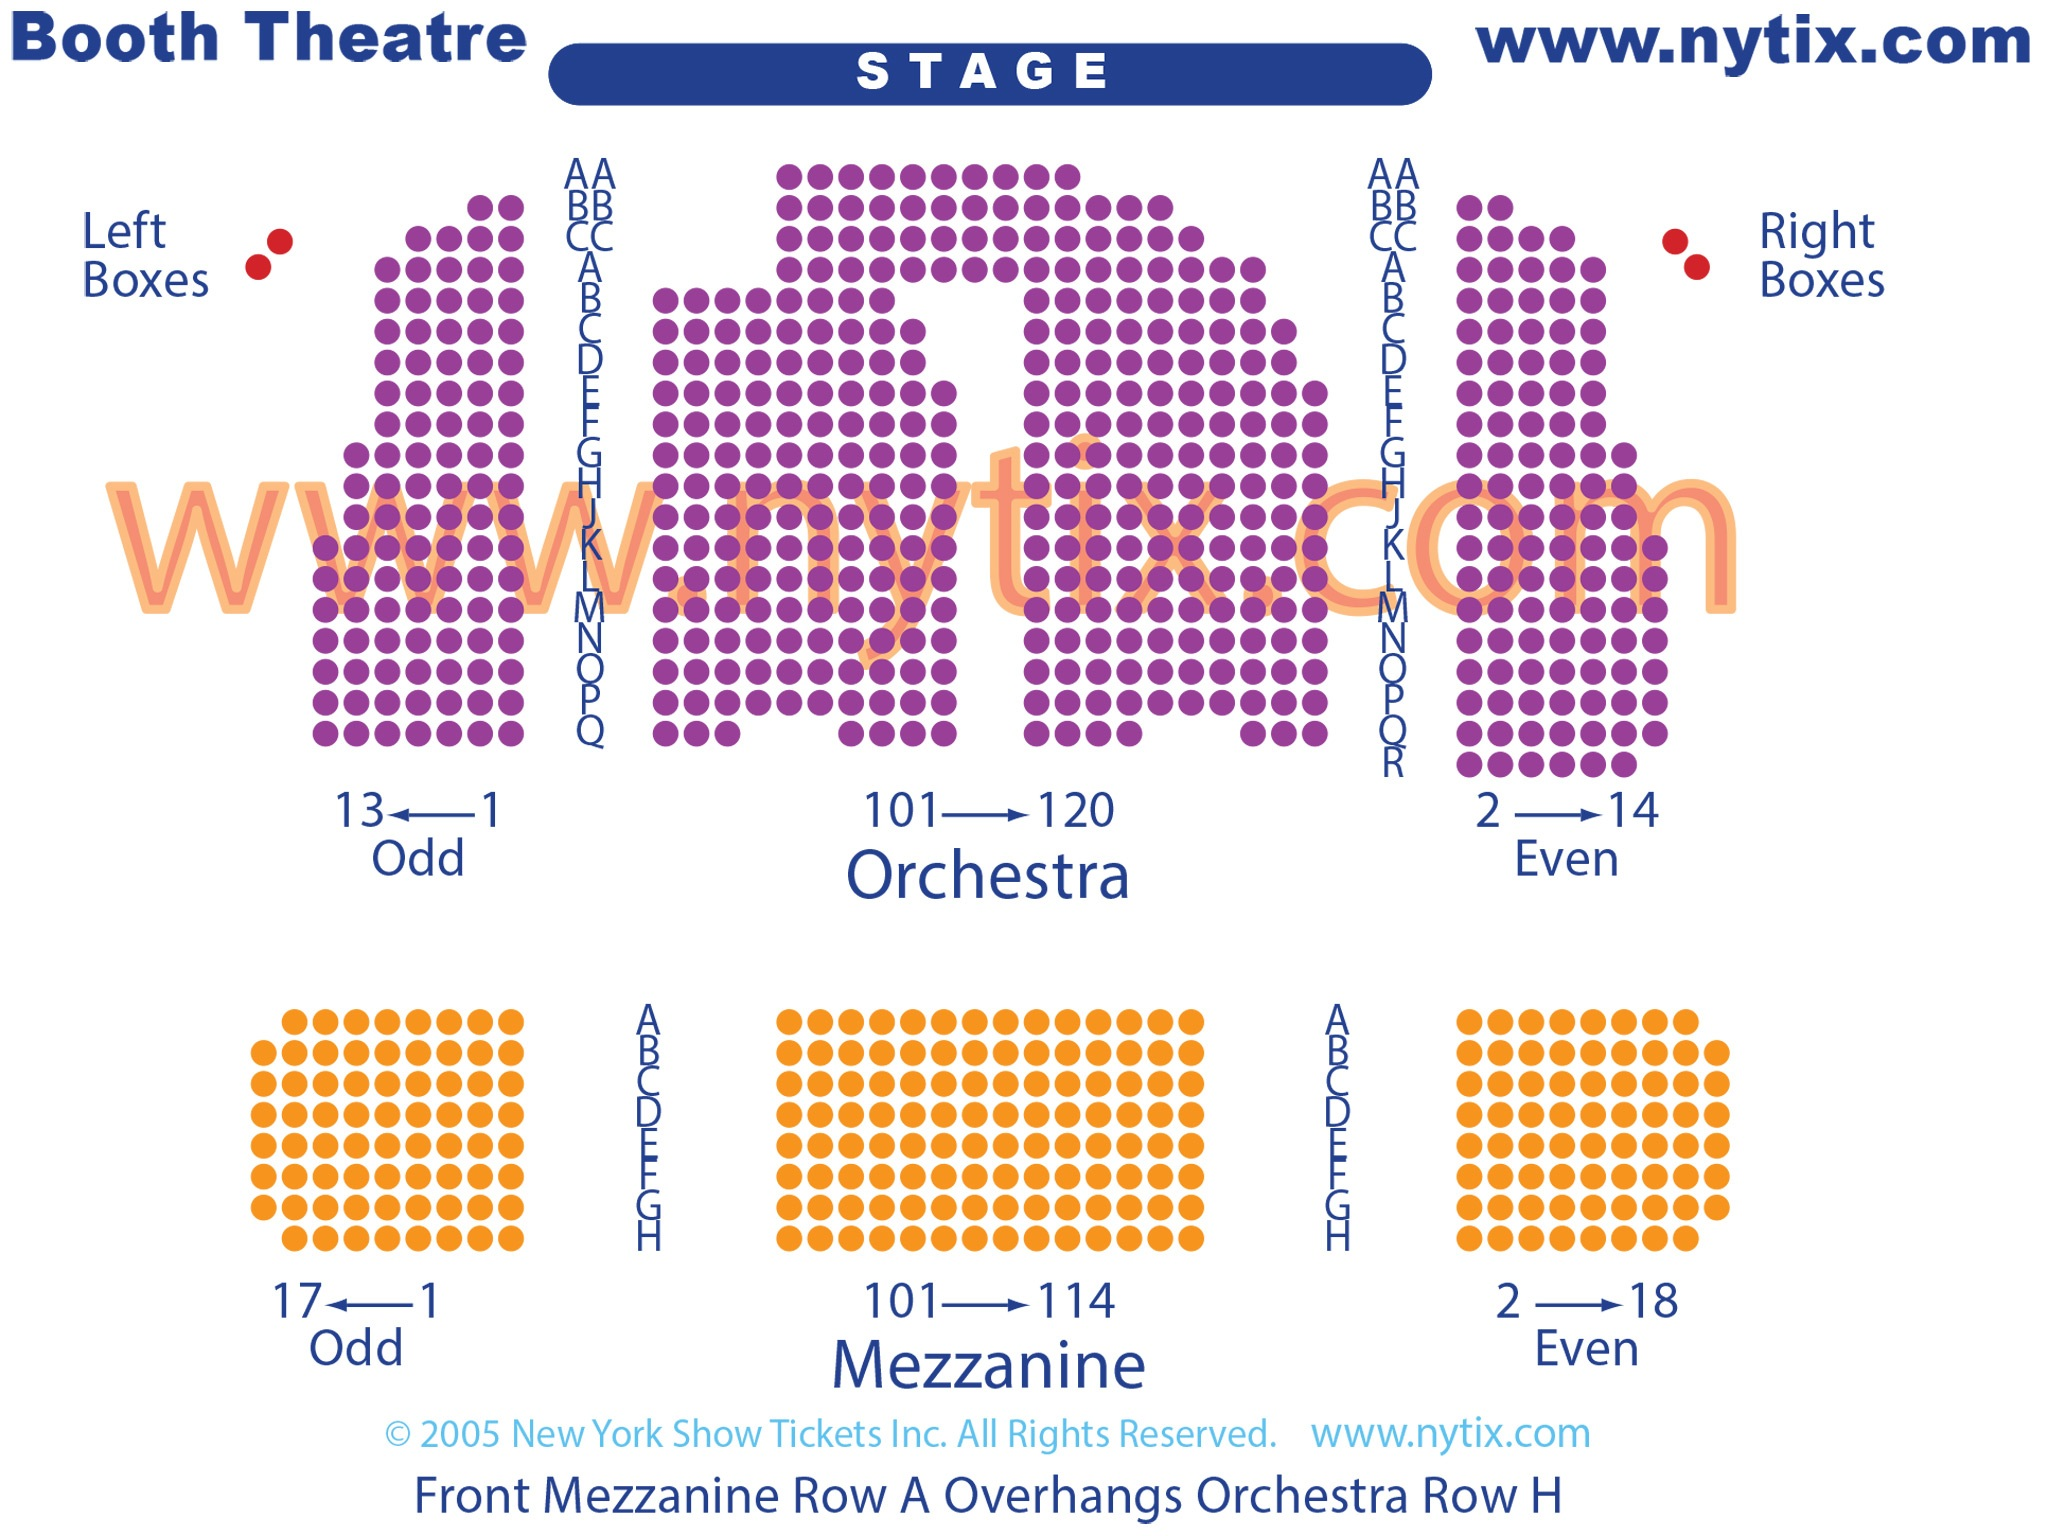 Booth Theatre Seating Chart